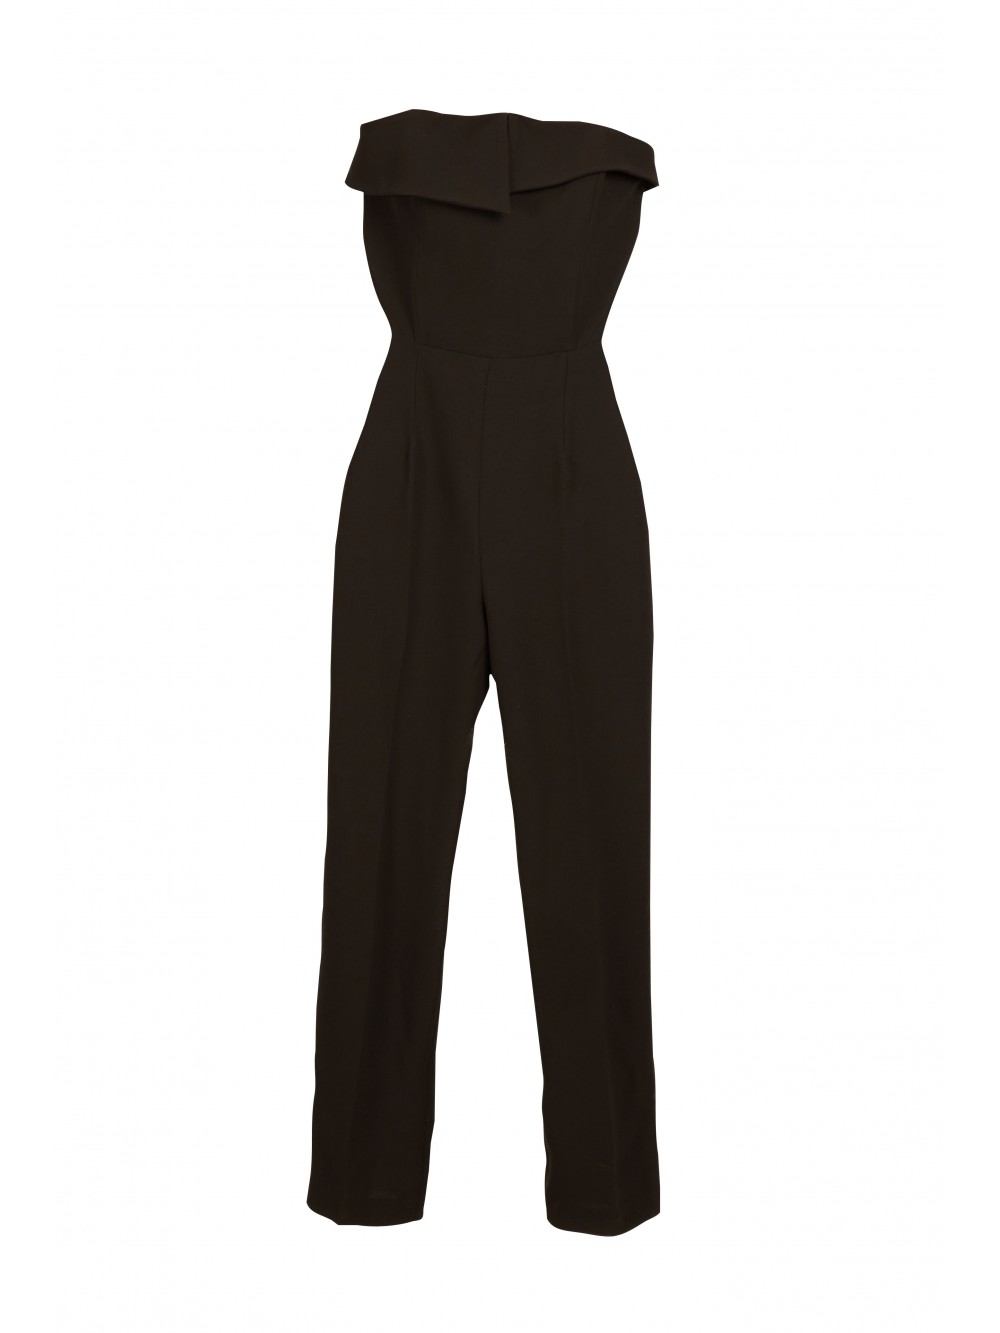 Strapless crepe jumpsuit with asymmetric top panel| Temperance